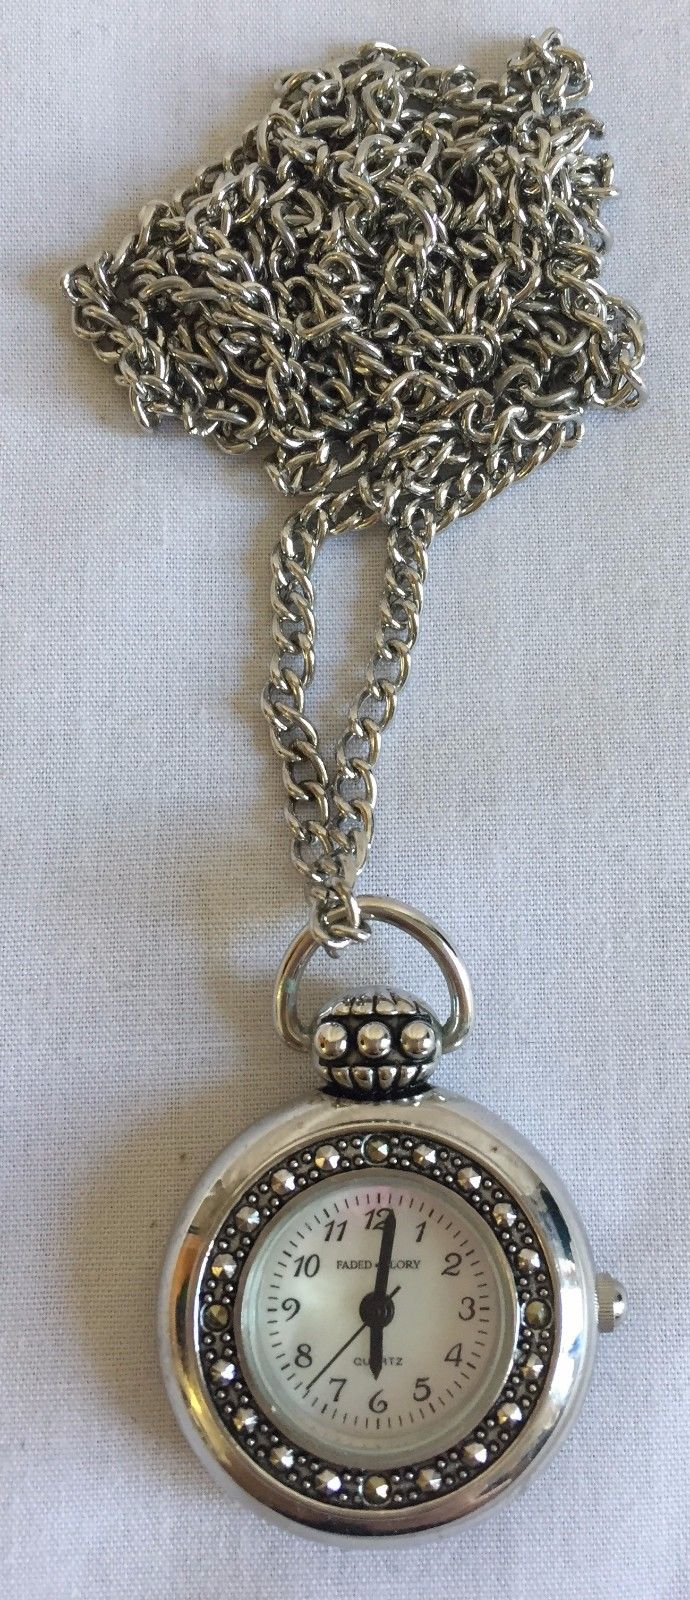 LadiesFADED GLORY NECKLACE PENDANT WATCH Battery Op JAPAN MOVEMENTmarcasite 2155